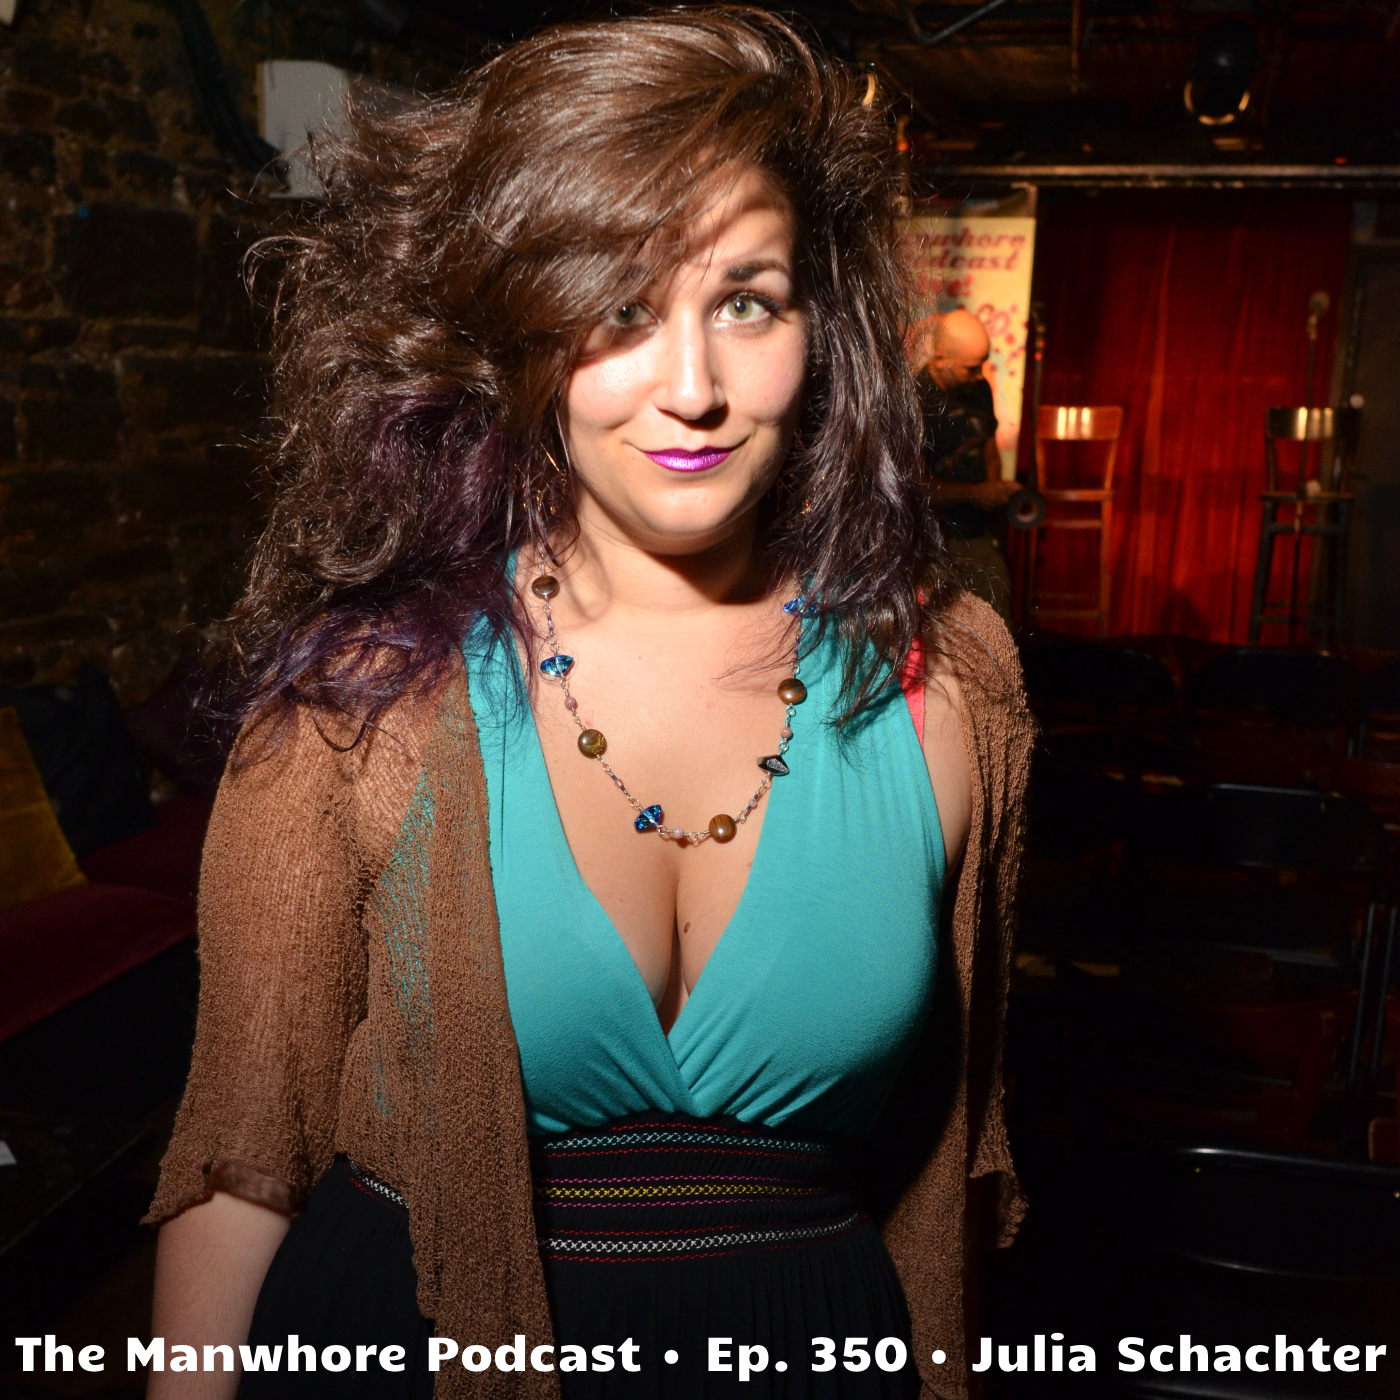 The Manwhore Podcast: A Sex-Positive Quest - Ep. 350: Beware of the Abusive Internet Dom with Julia Schachter // Horny Therapists with Dr. David Ley